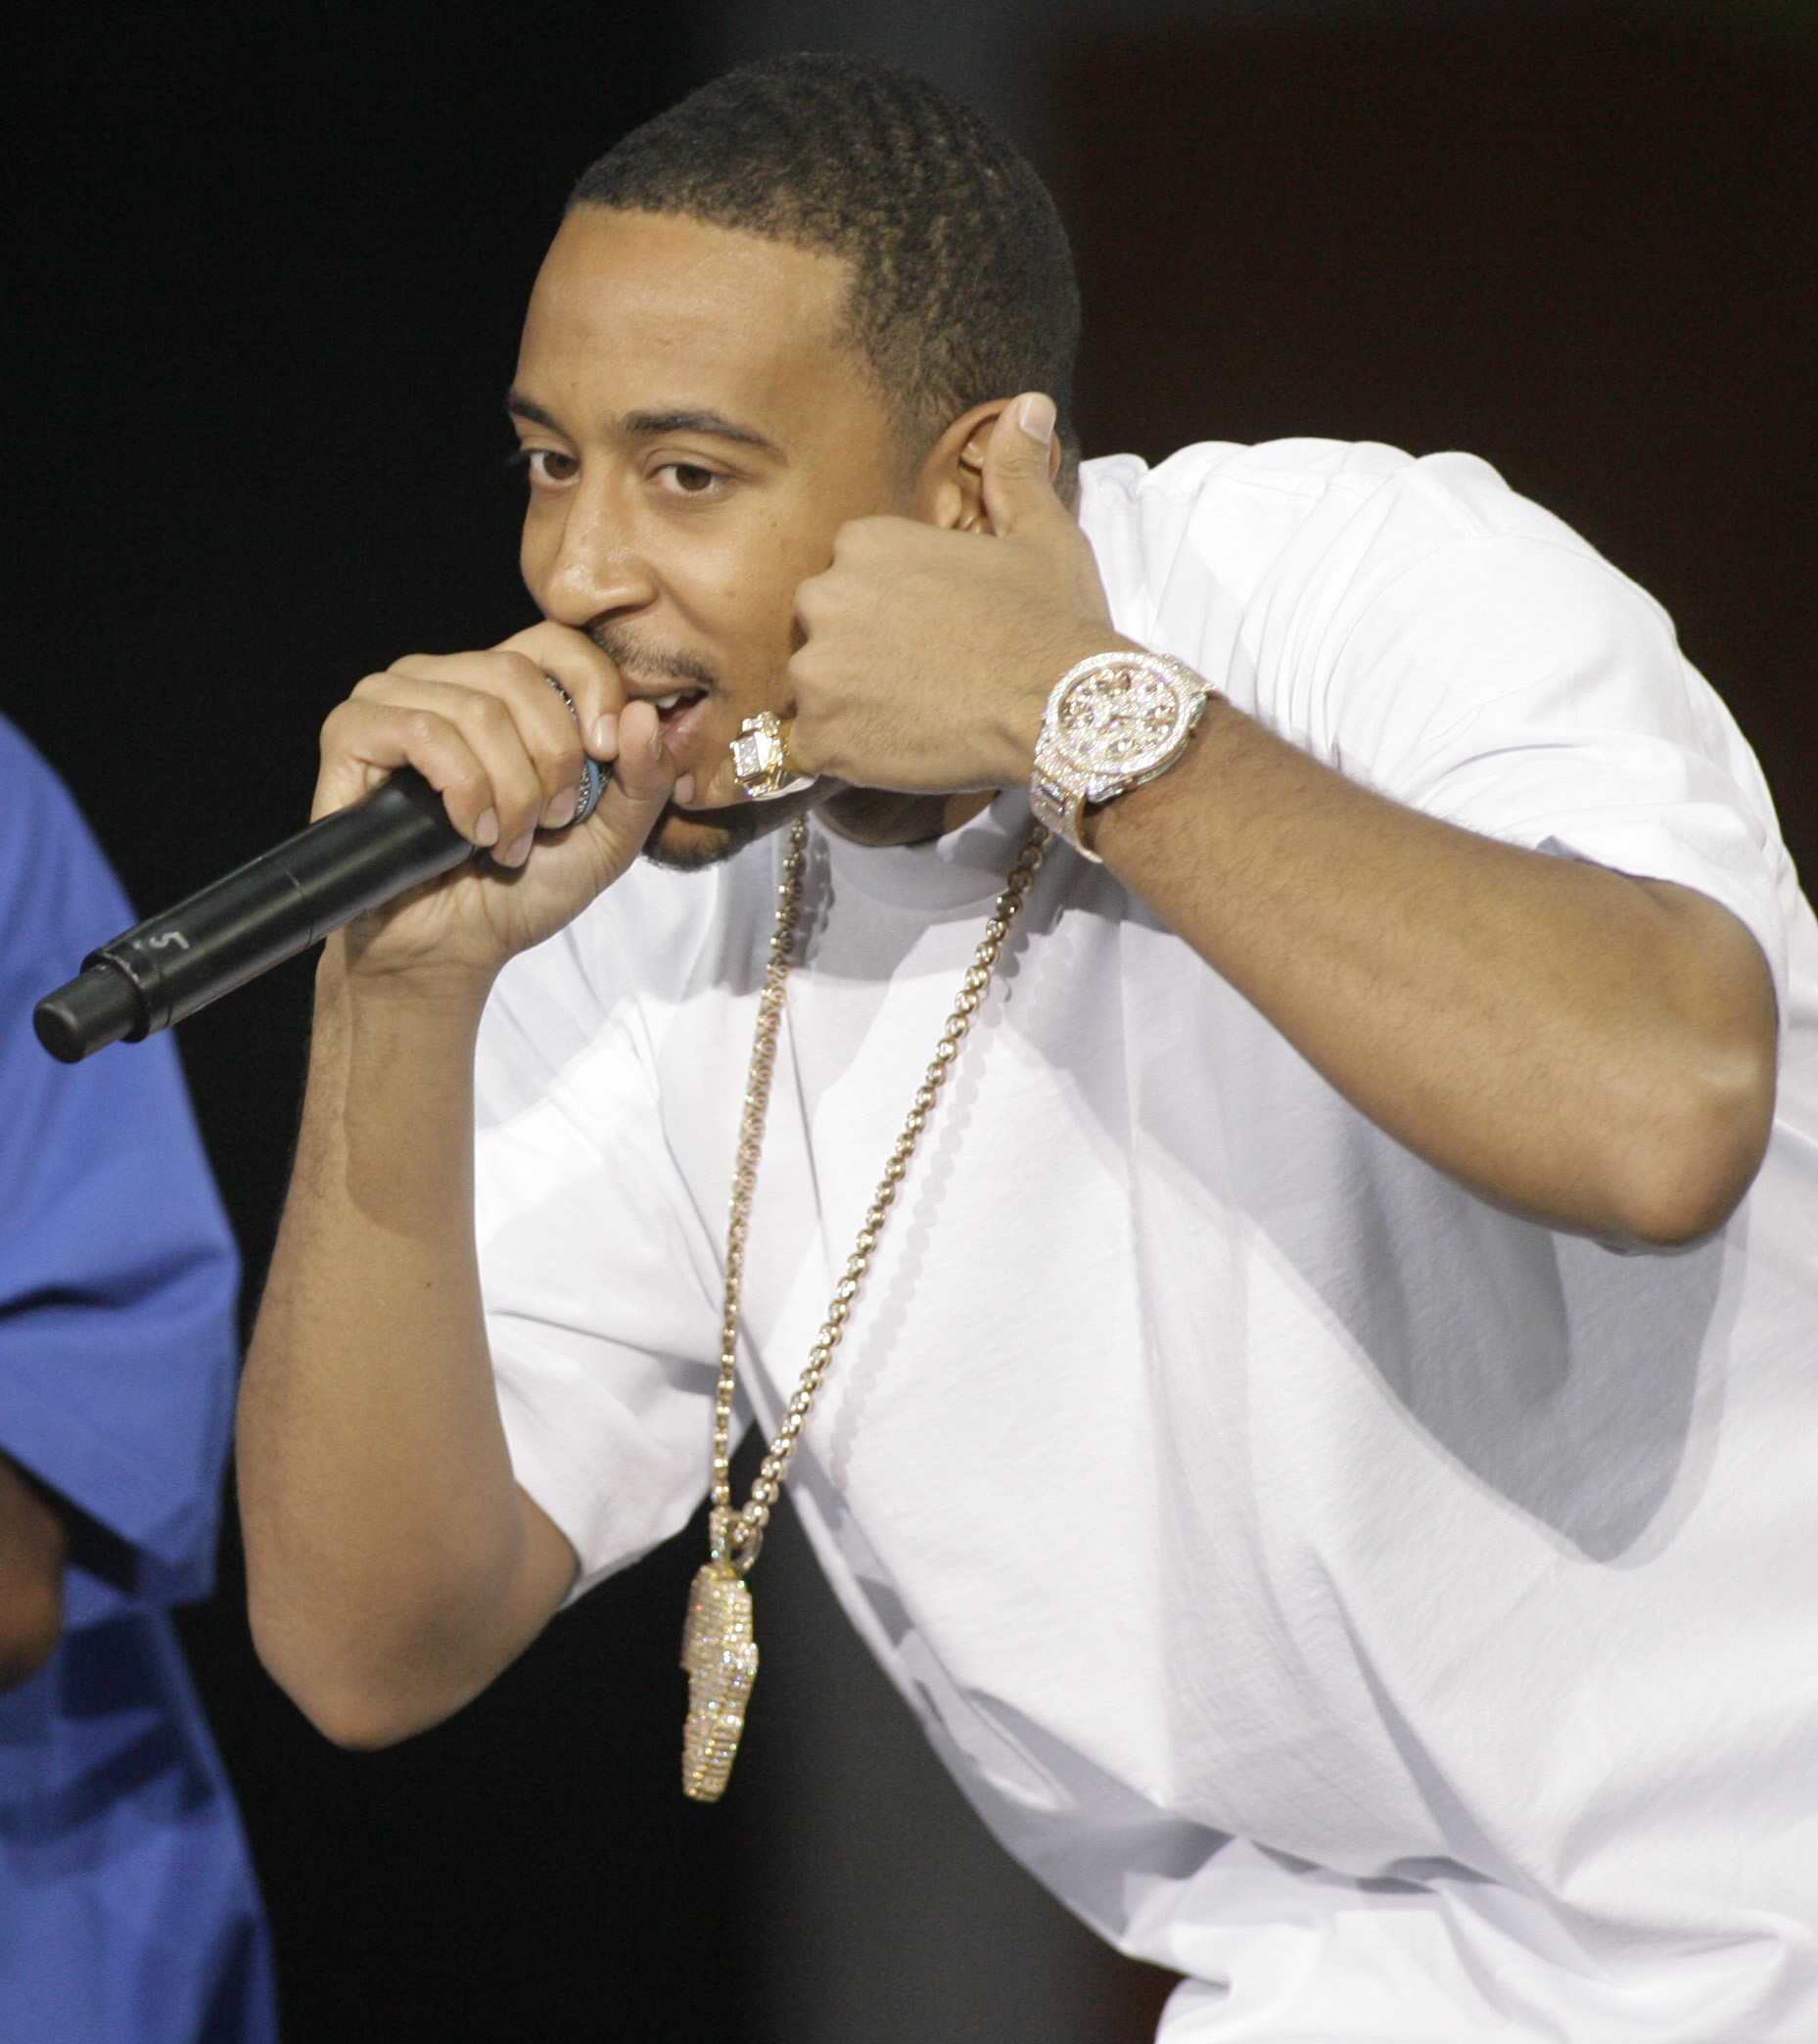 http://tapemastersinc.files.wordpress.com/2009/01/ludacris.jpg